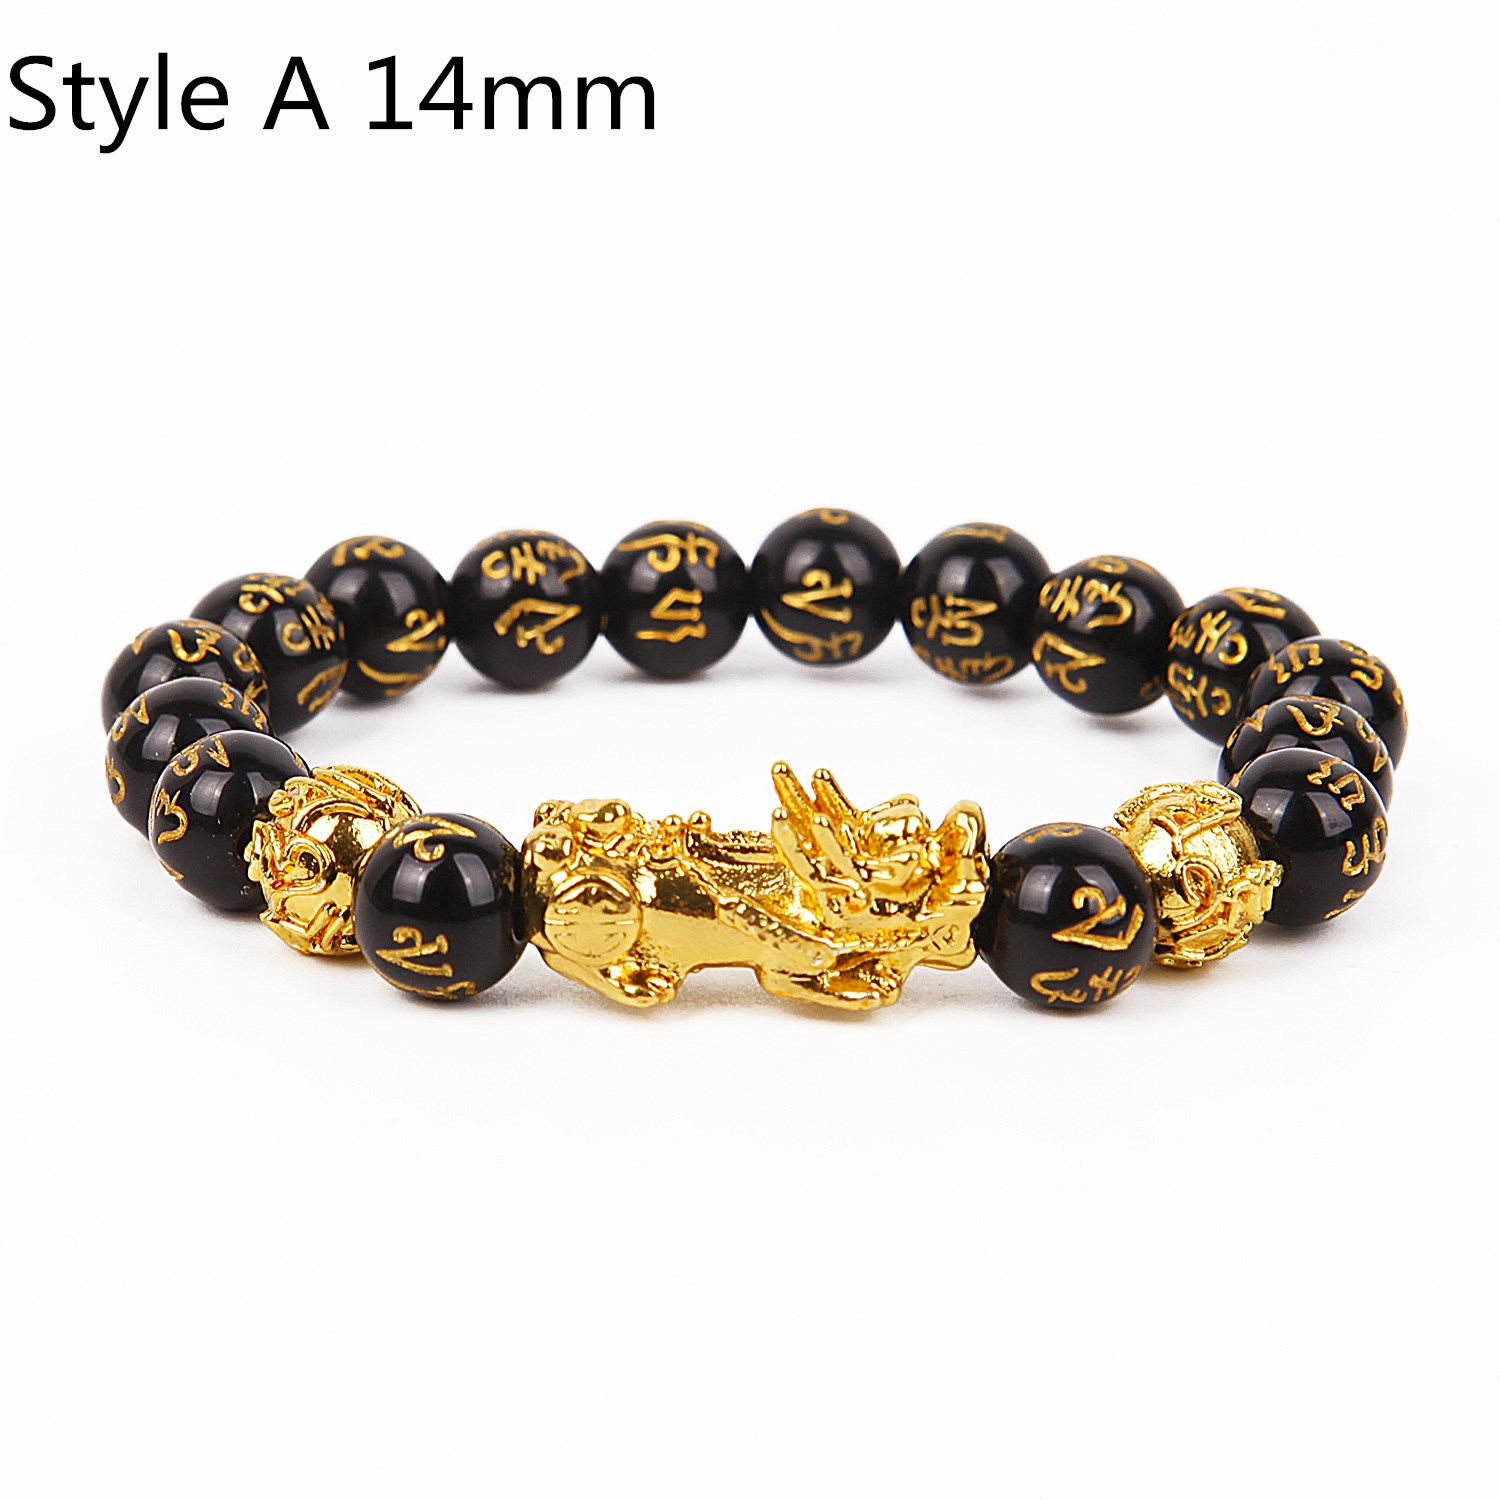 Style A 14mm